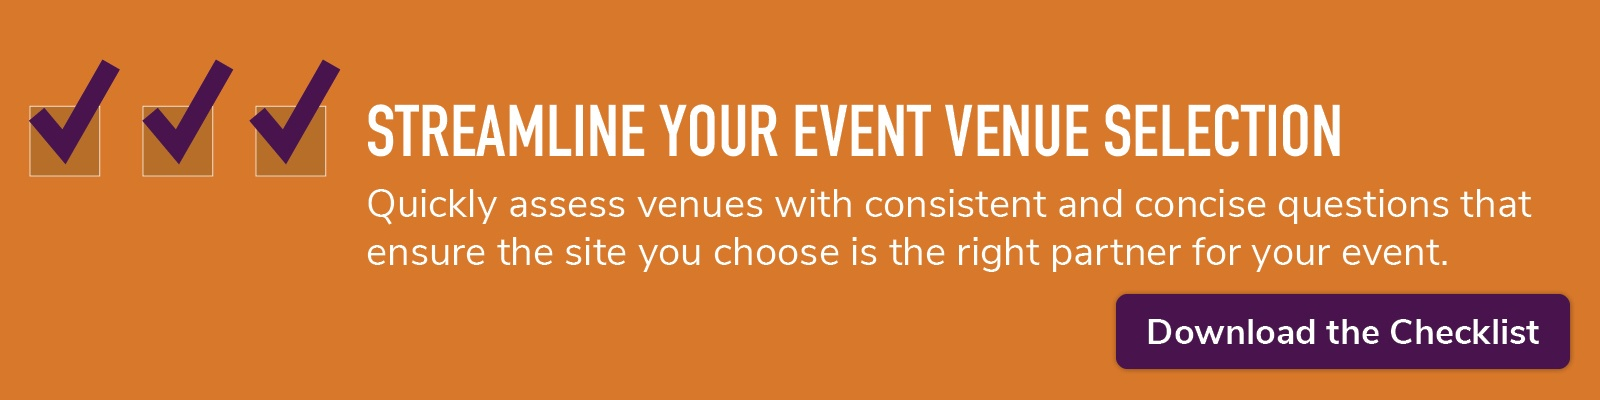 streamline your event venue selection; download the checklist